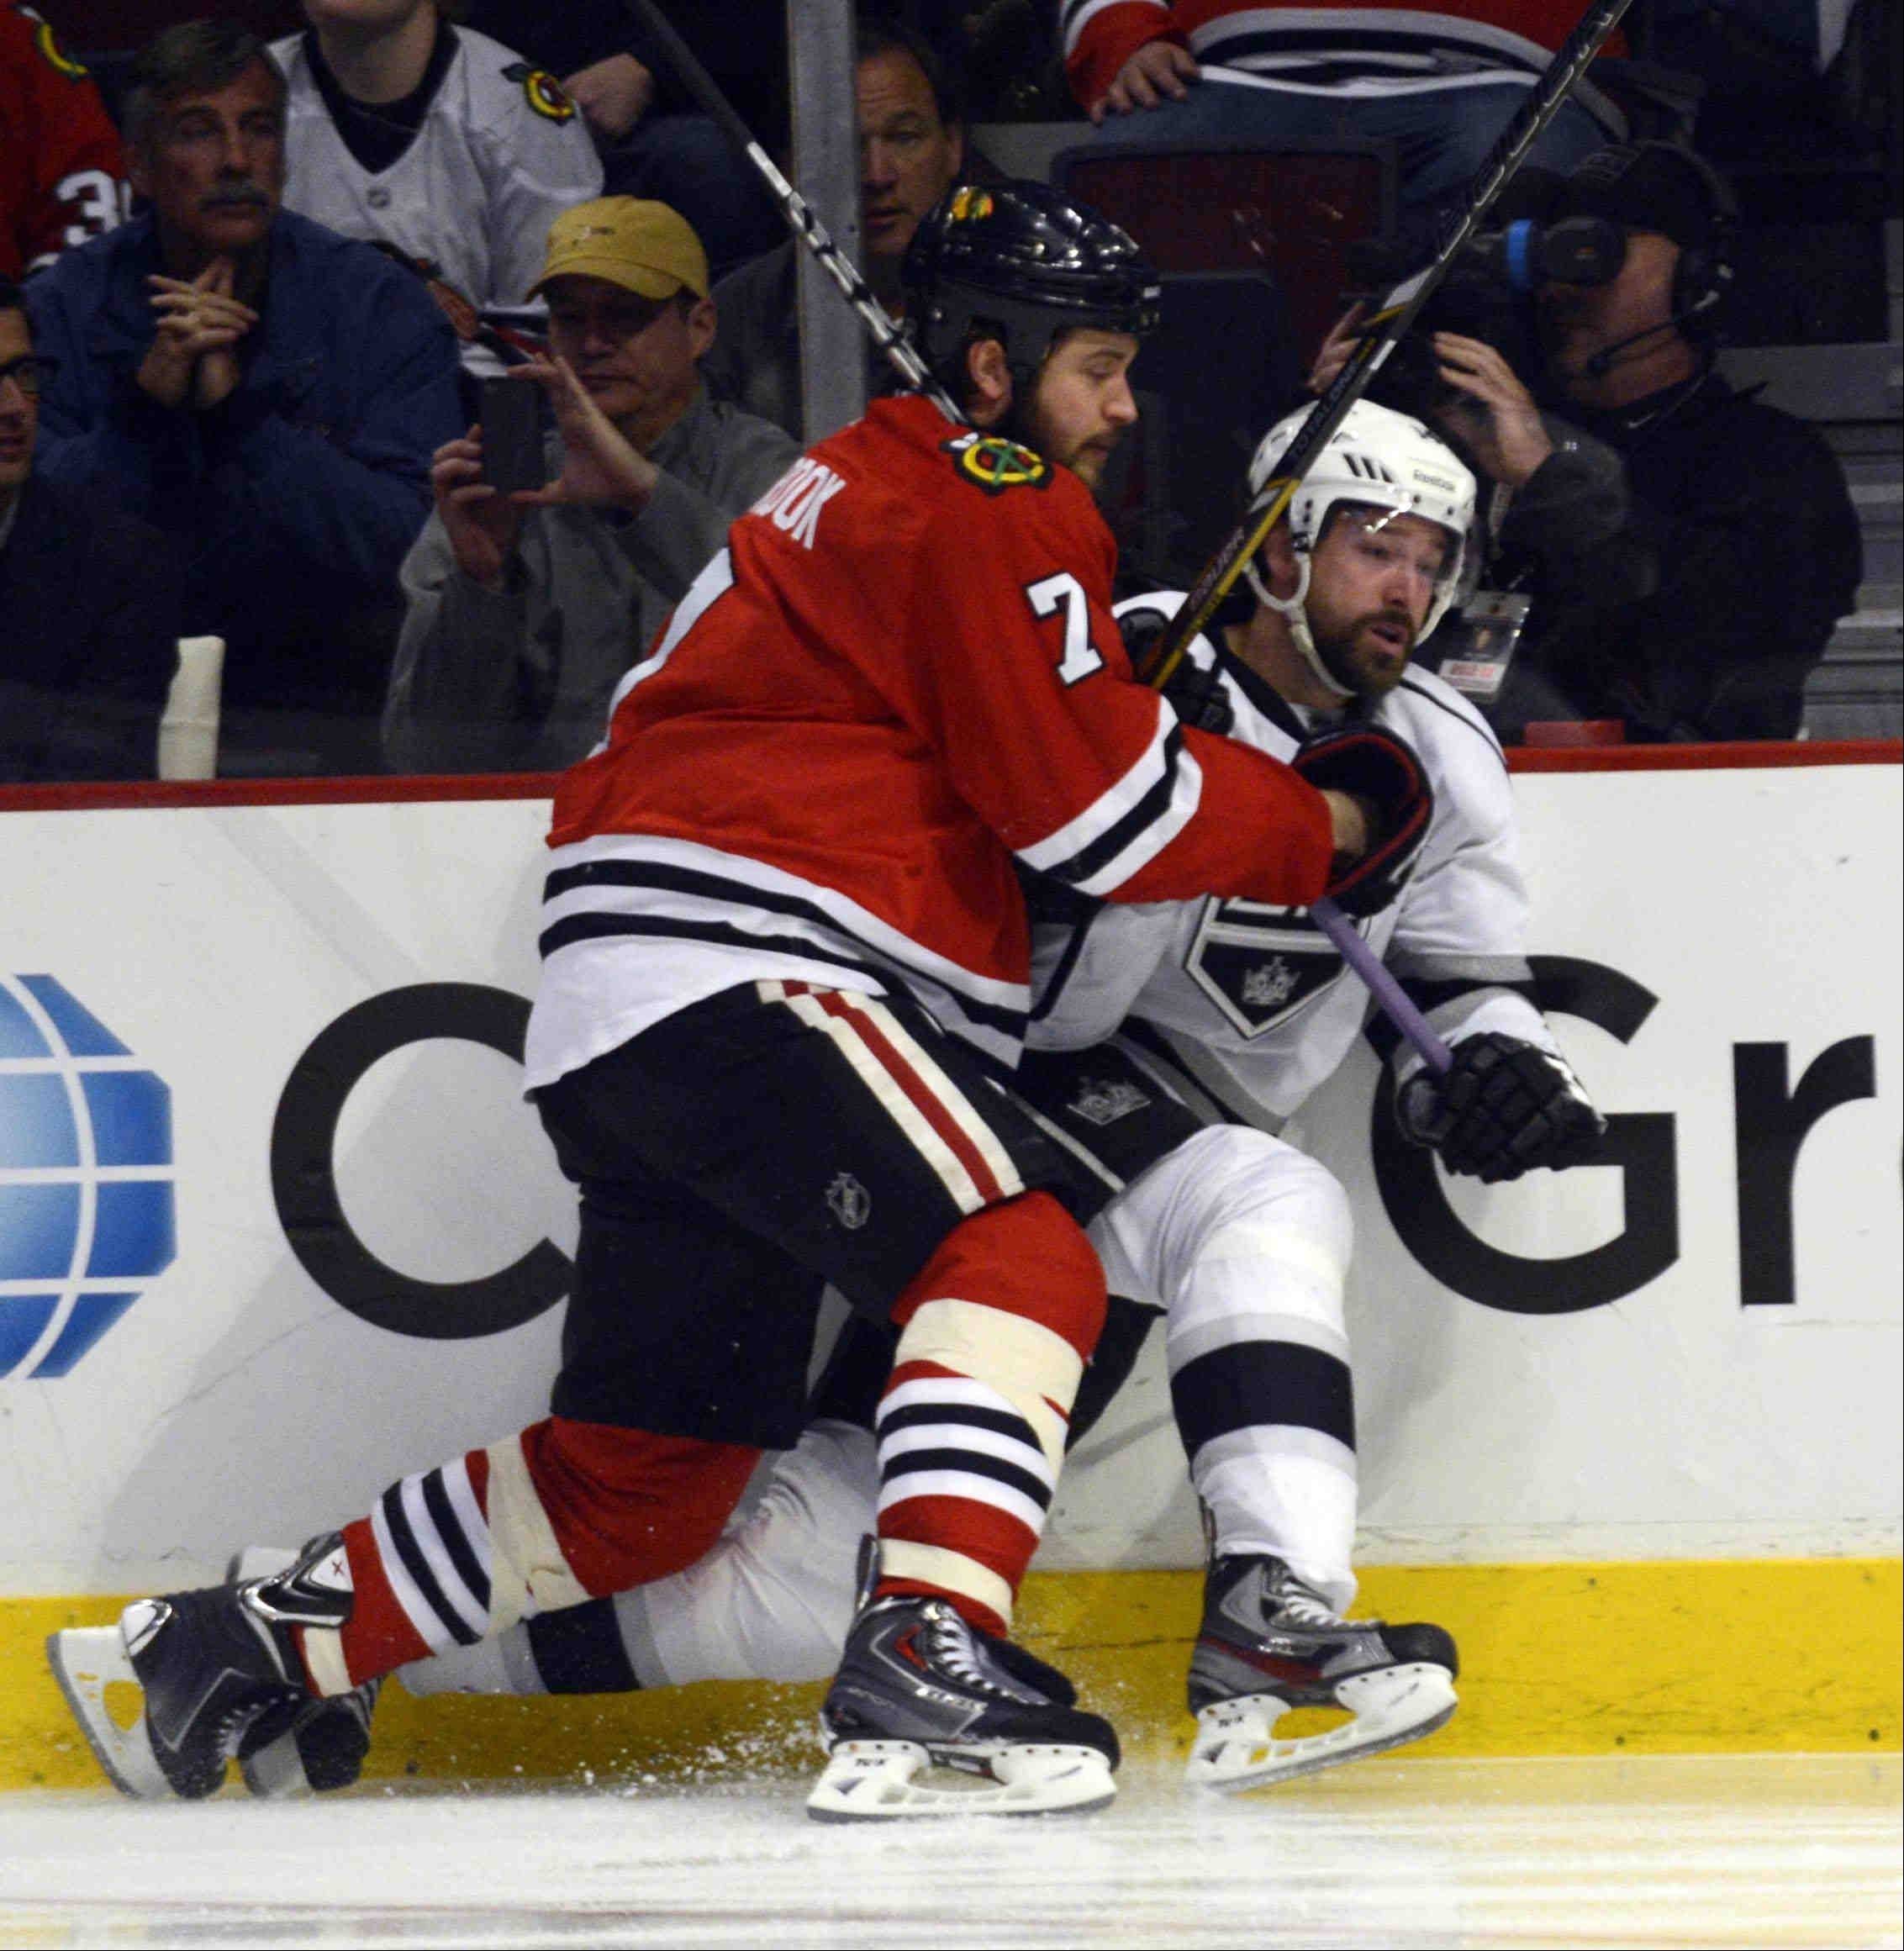 Blackhawks defenseman Brent Seabrook pins Los Angeles Kings right wing Justin Williams against the boards in the second period during Game 2 of the Western